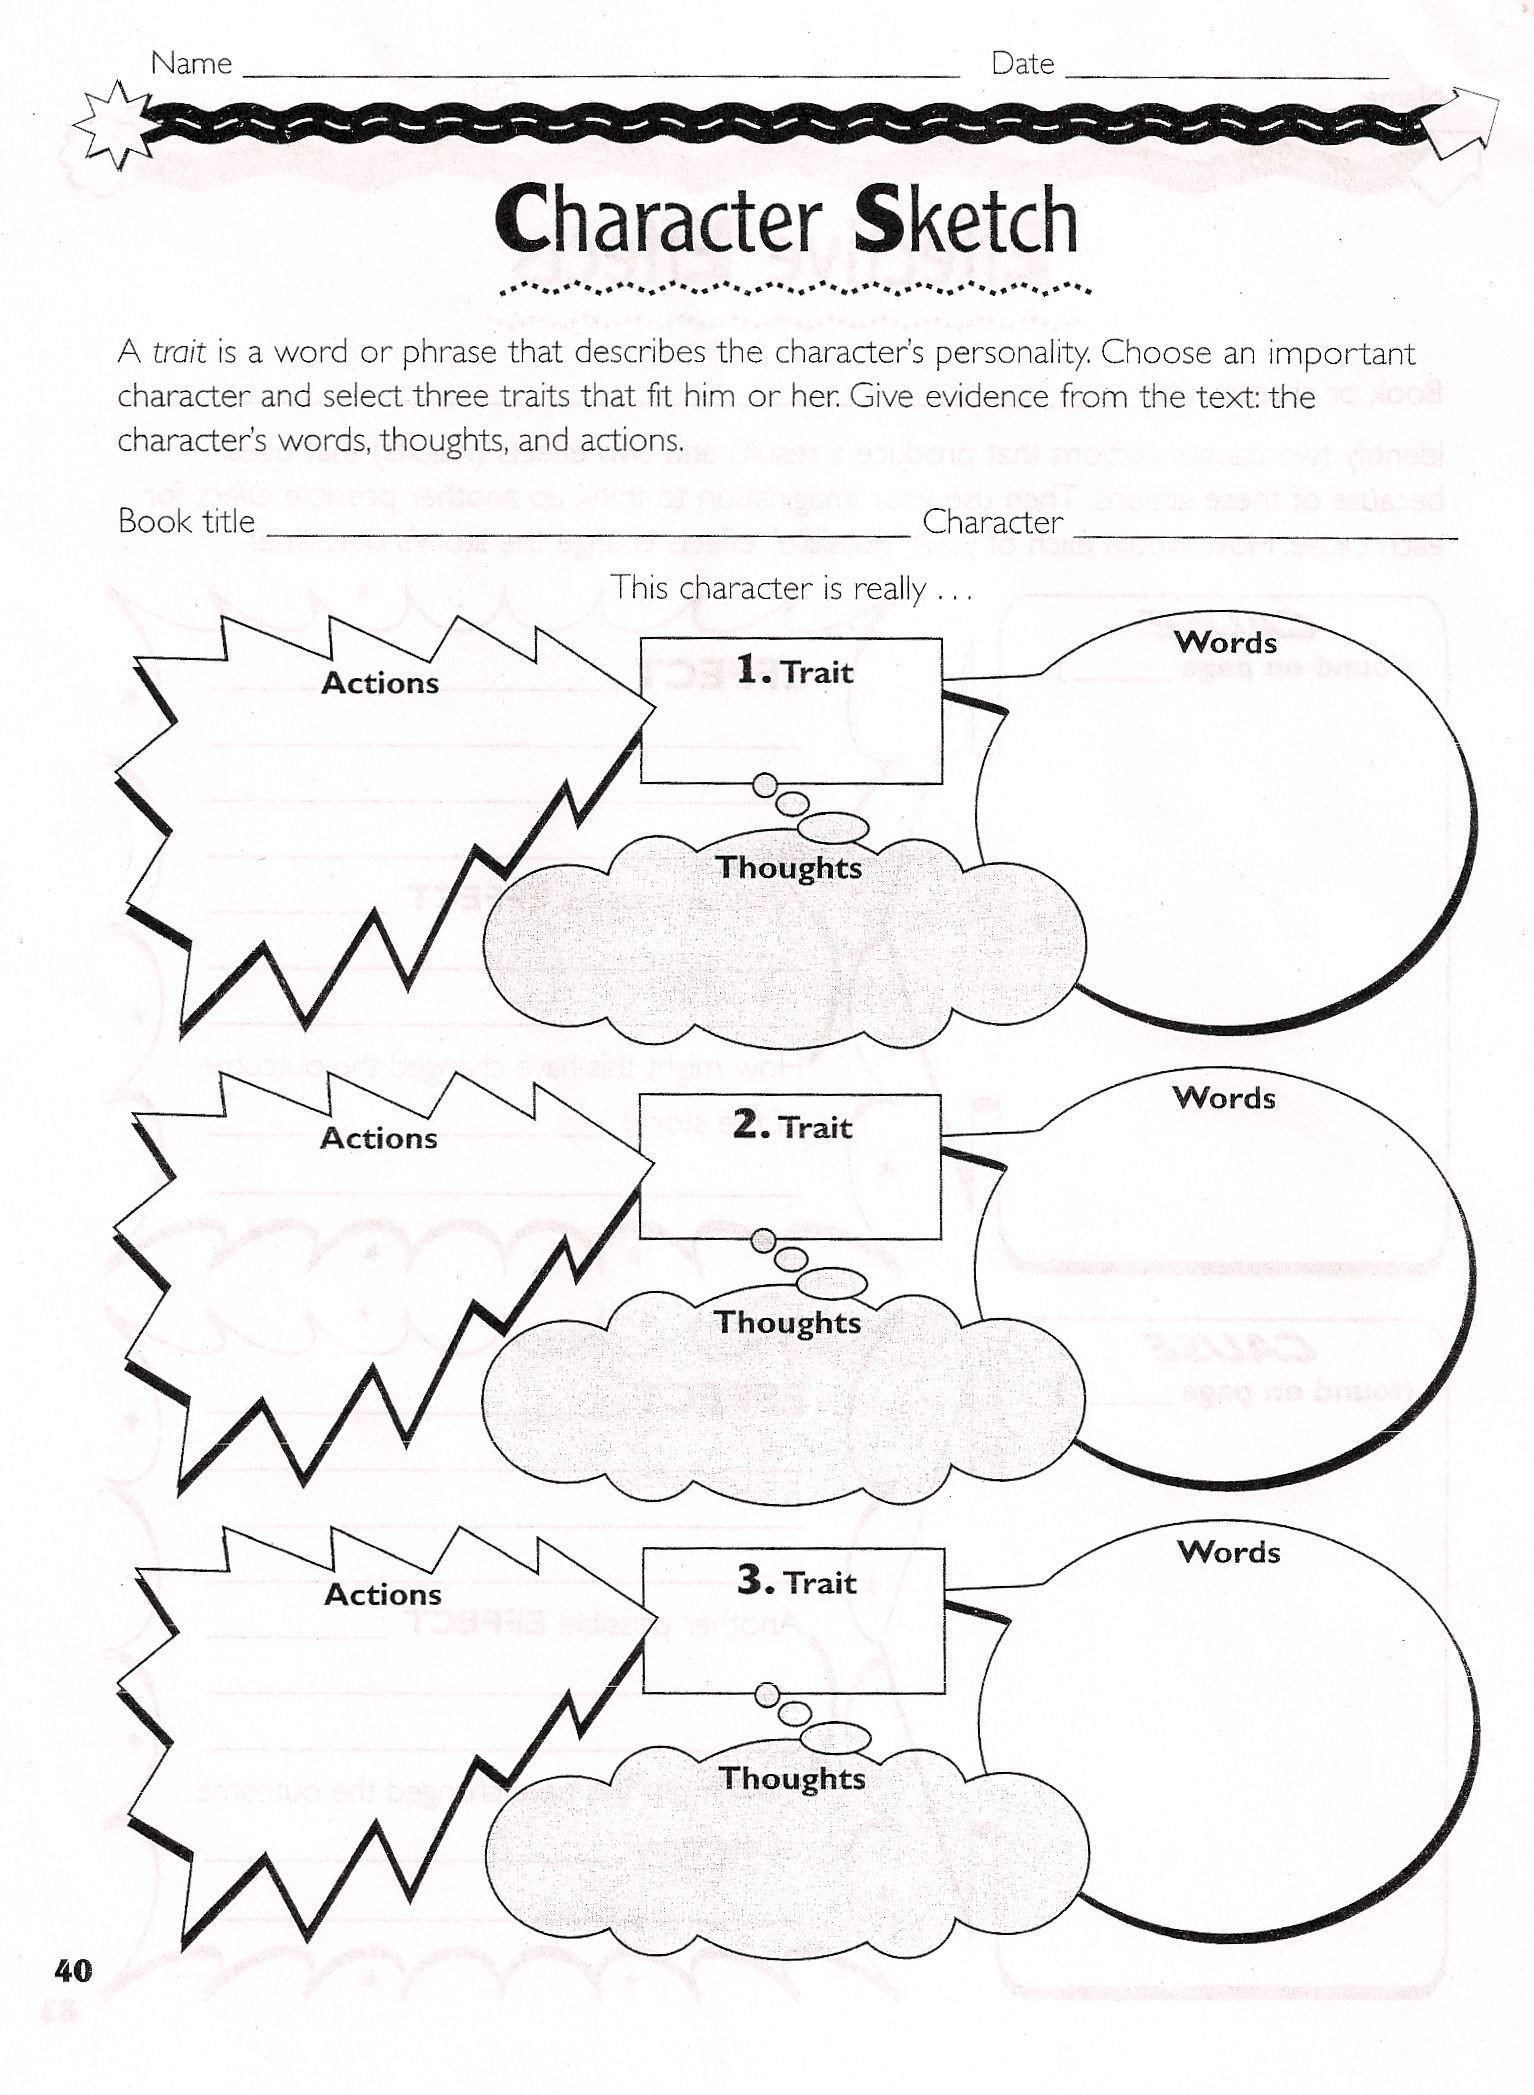 History Worksheets for 2nd Grade Second Grade History Worksheets Hiddenfashionhistory